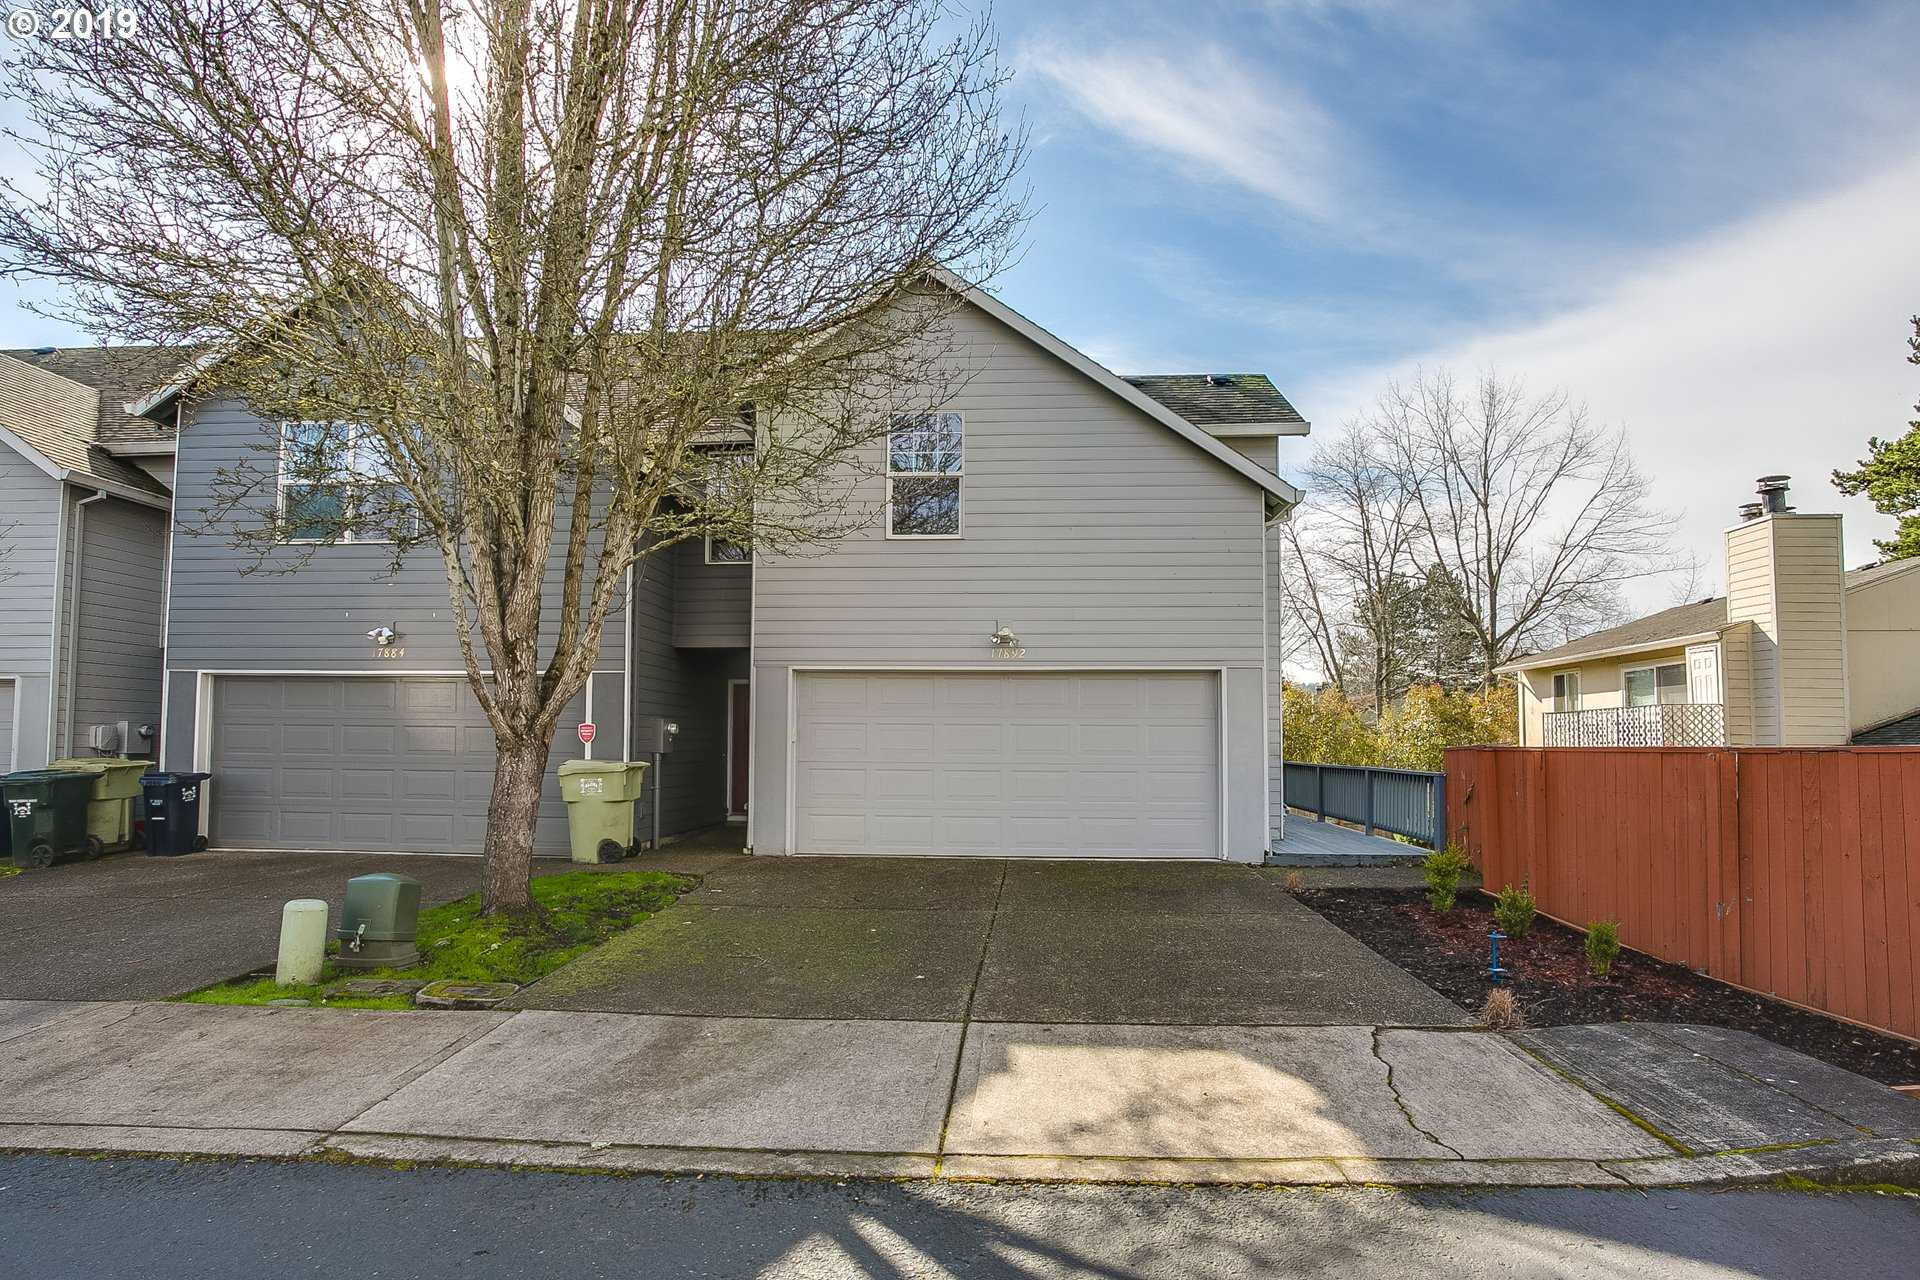 $298,000 - 3Br/2Ba -  for Sale in Beaverton